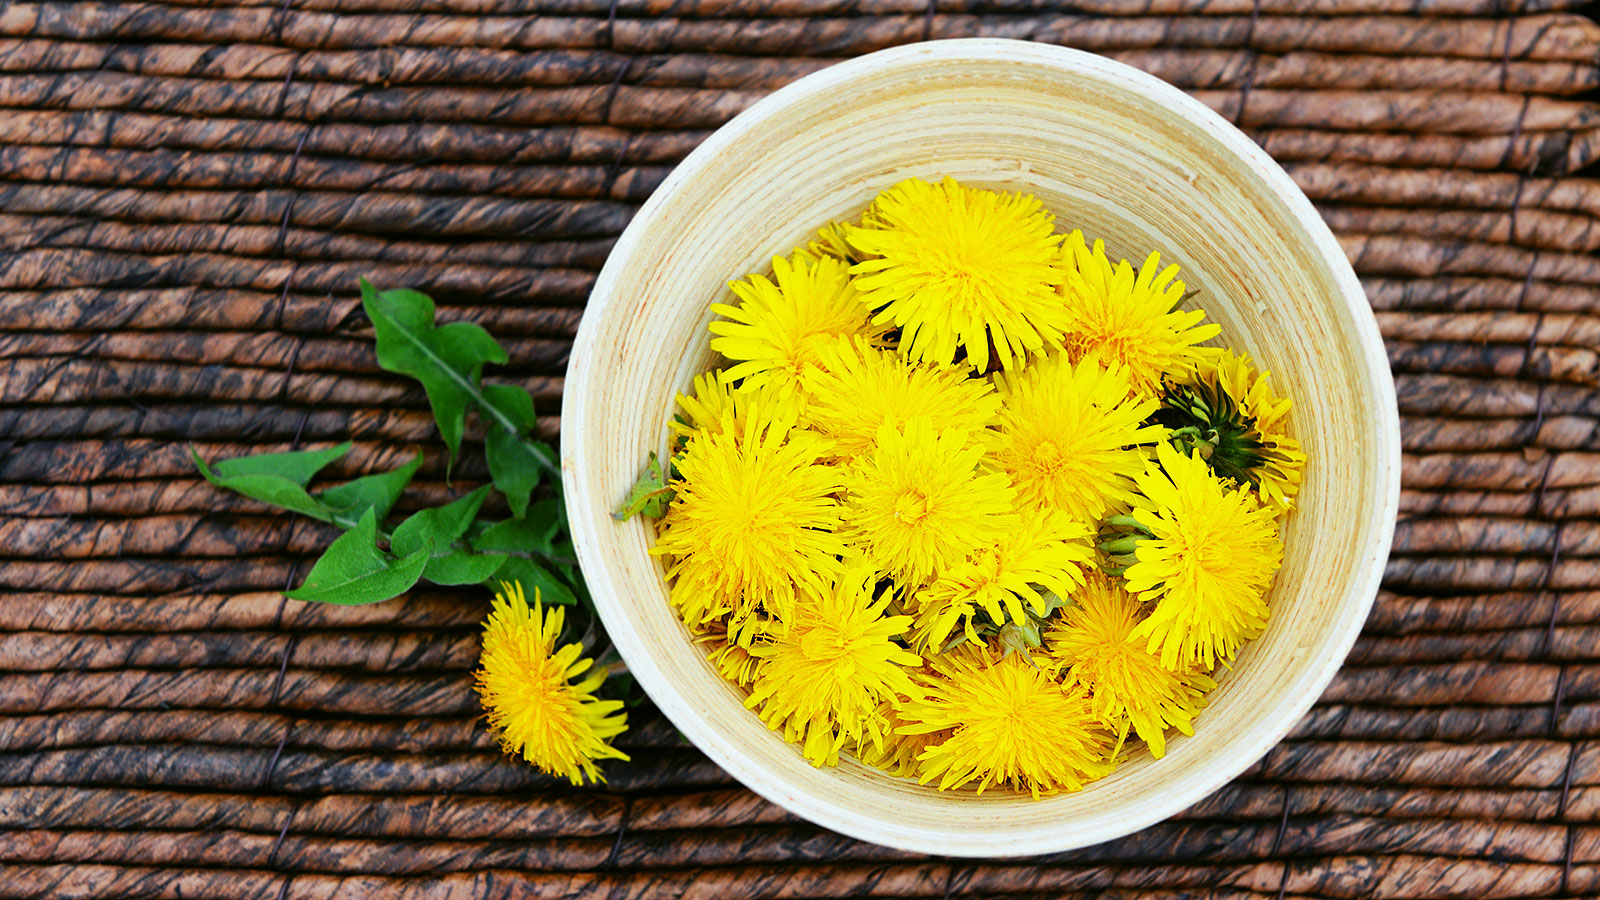 Why you should be eating dandelions, according to a medical advisor